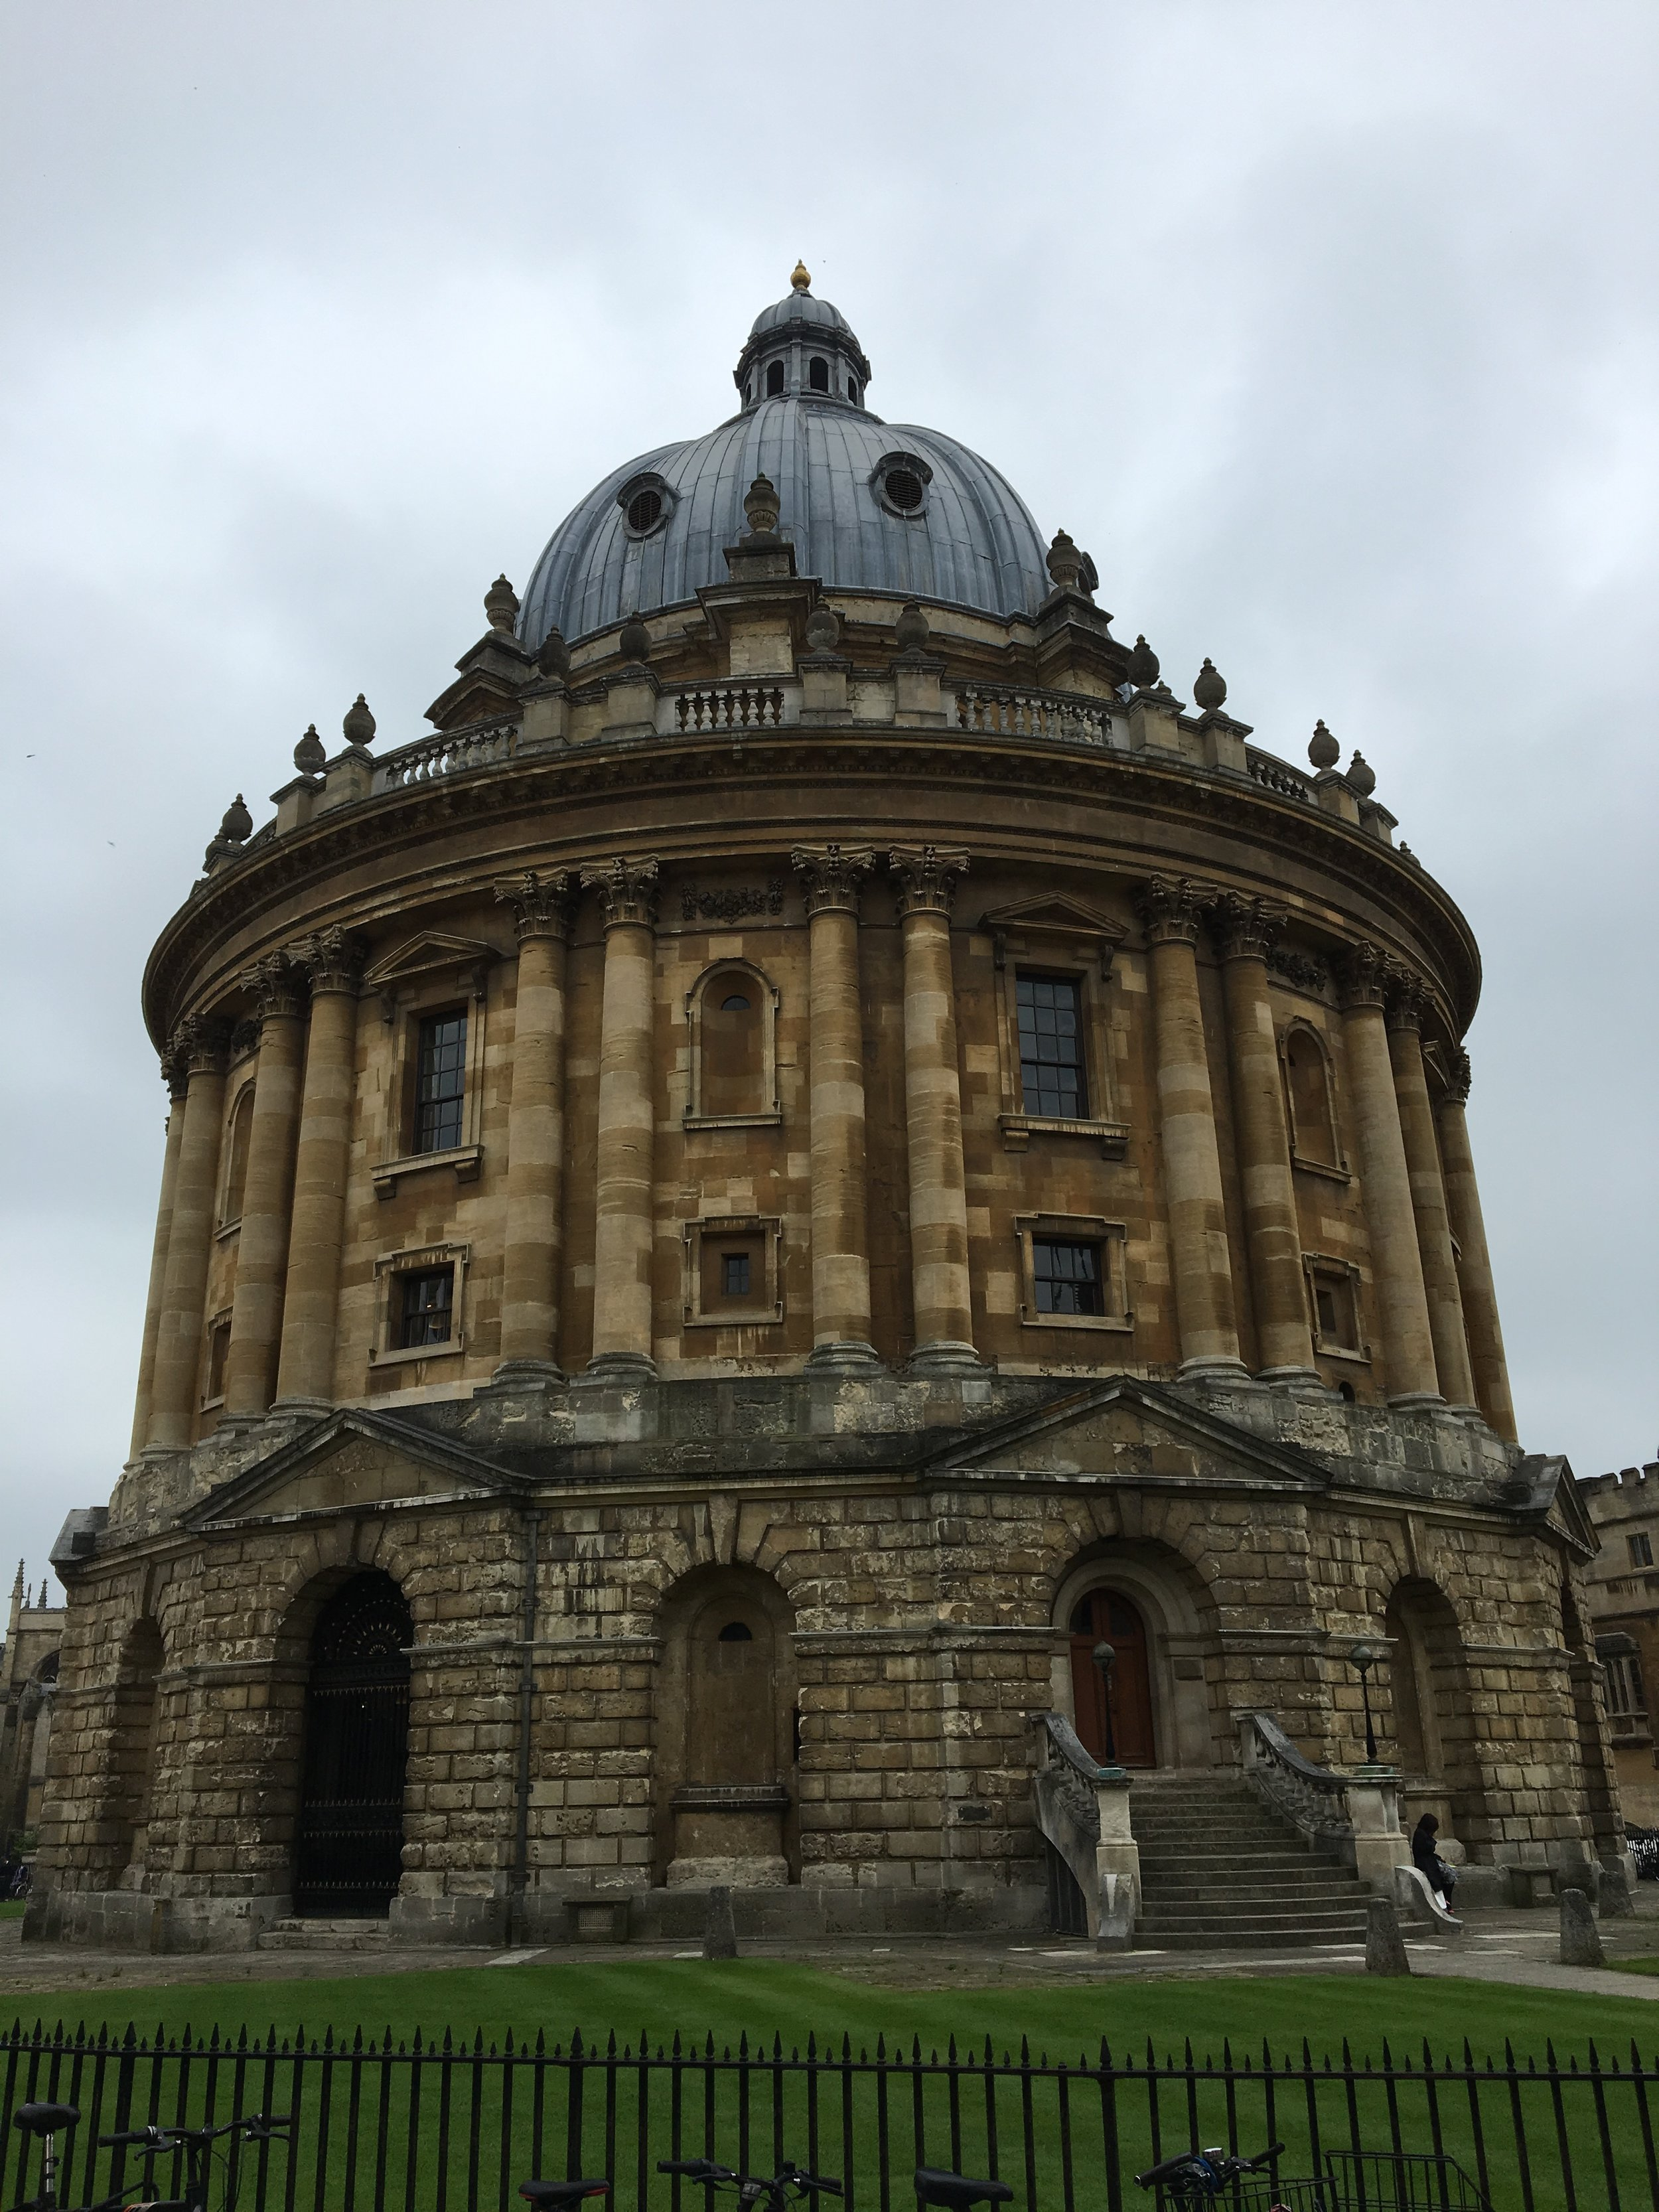 The Bodleian at Oxford